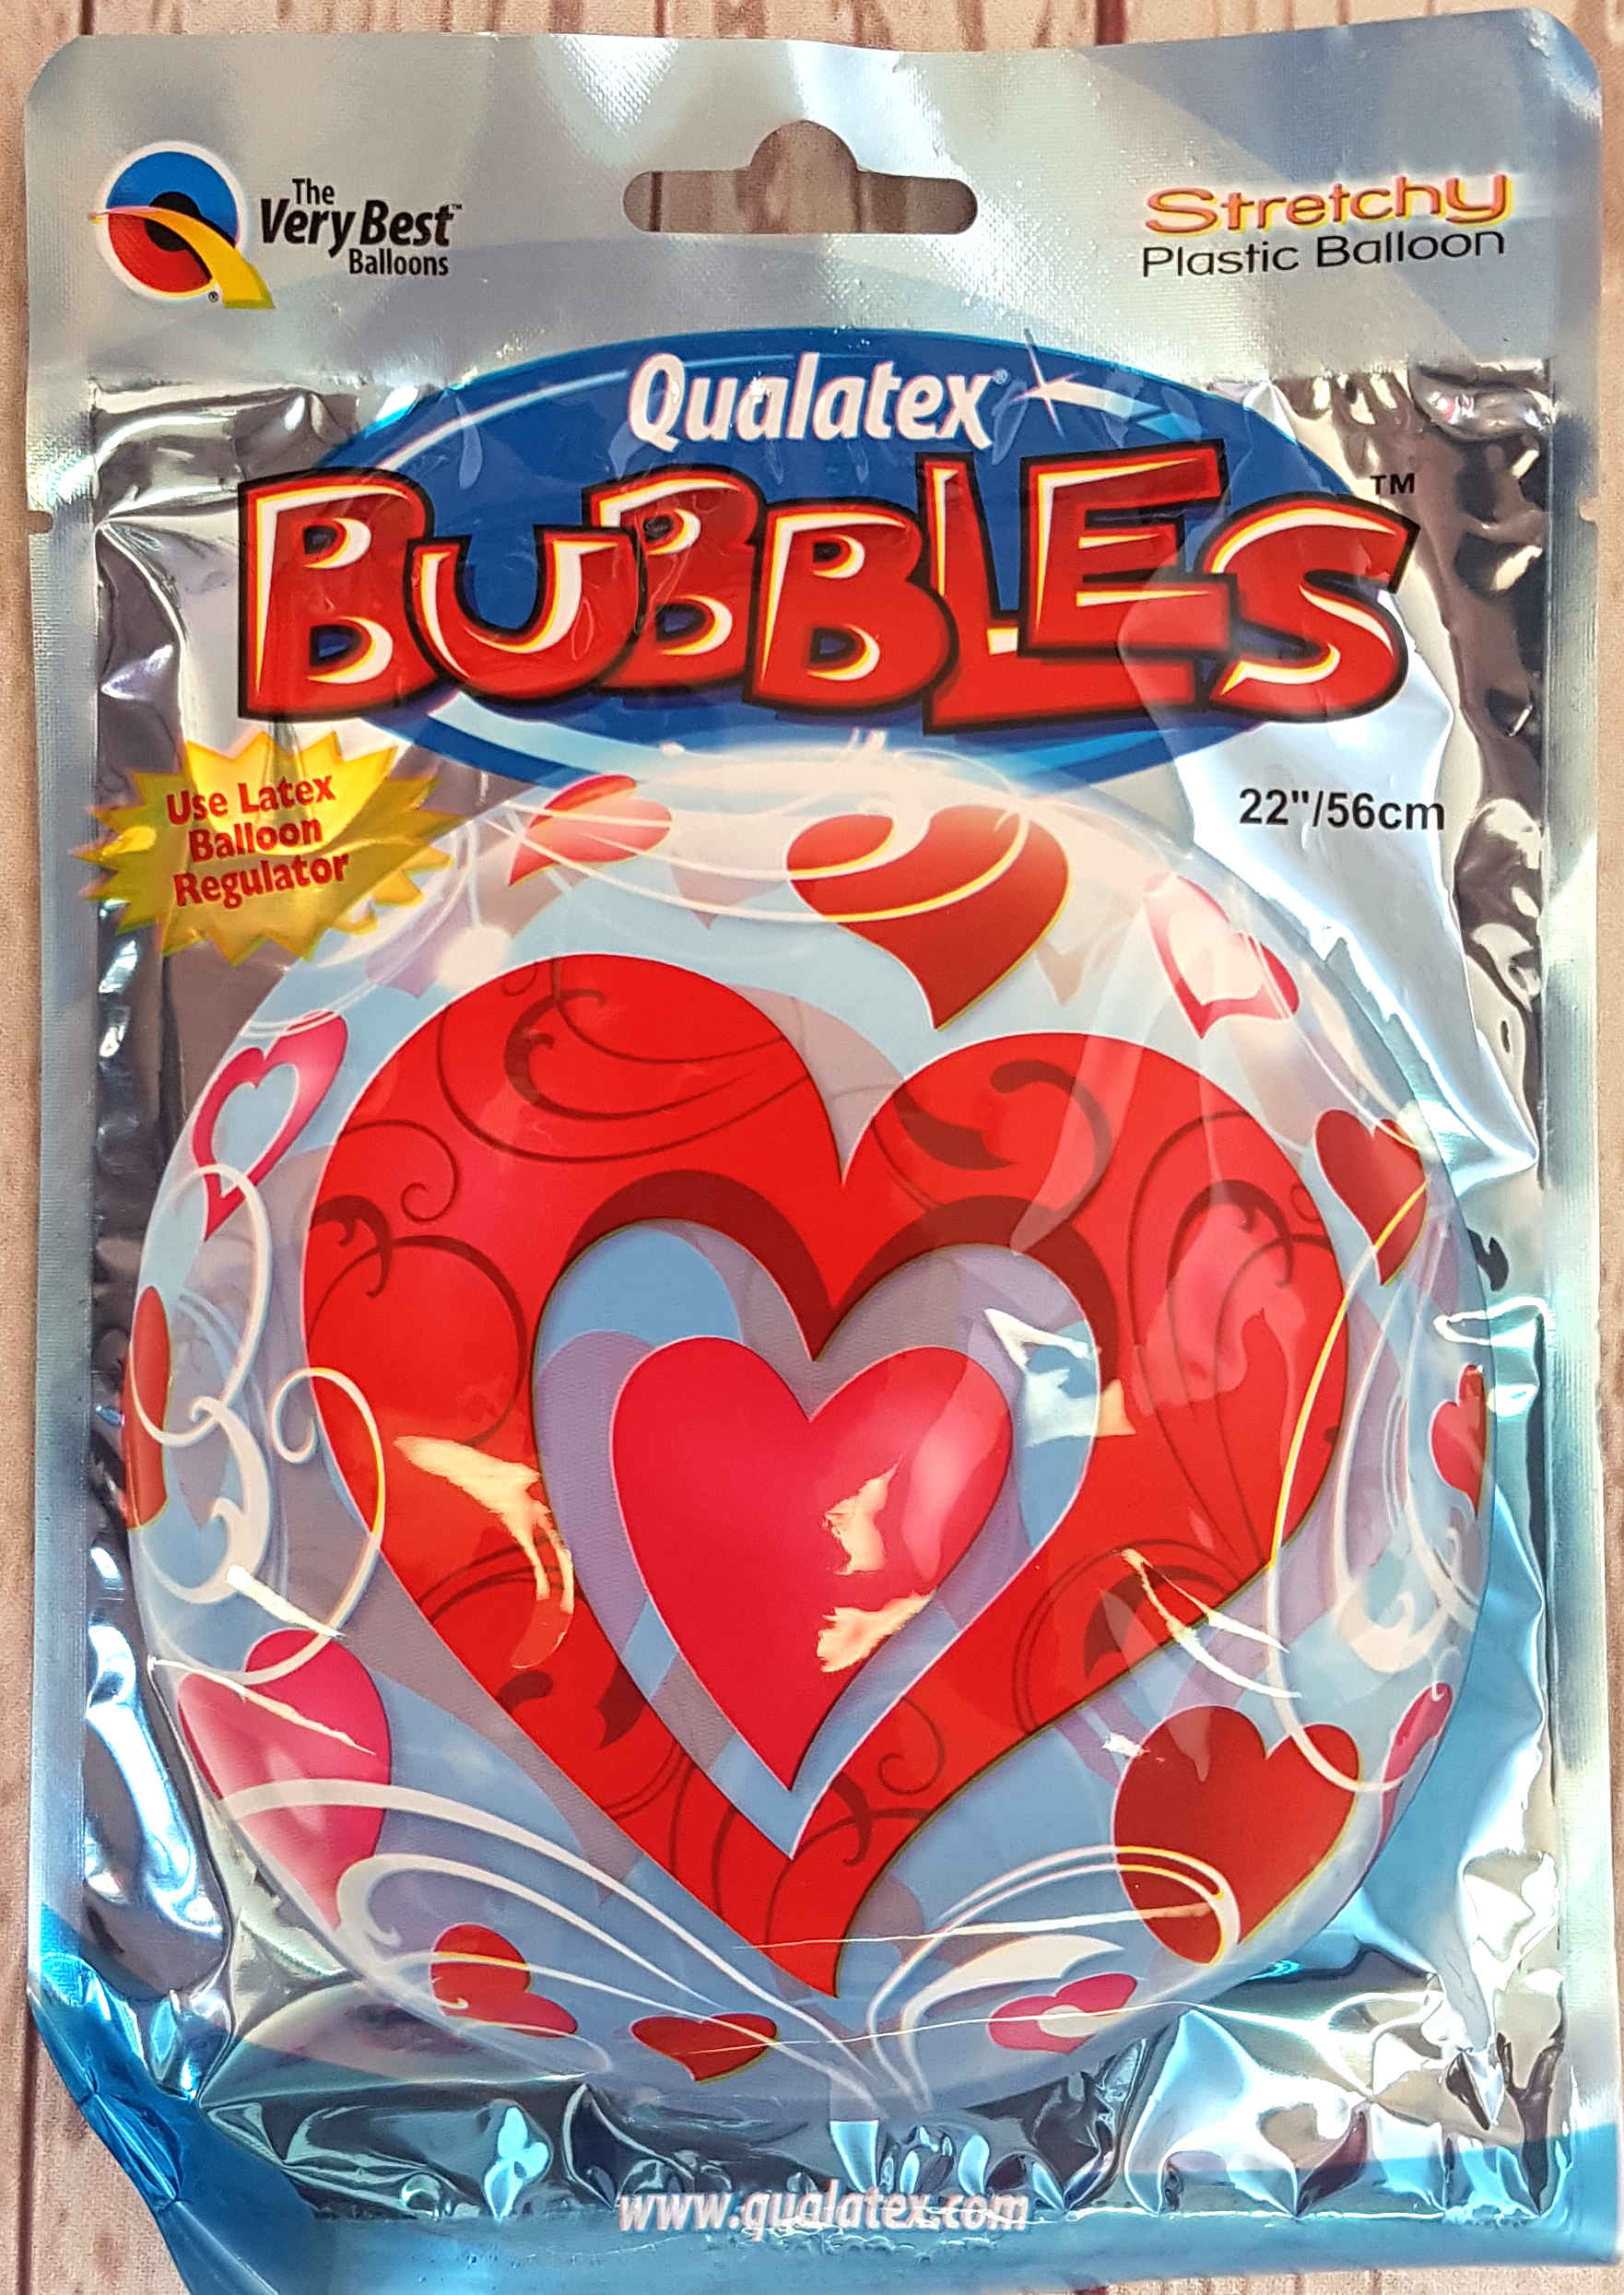 Bubbles, the texture of this balloon appears like a bubble ball, a massive 58 cm when inflated.